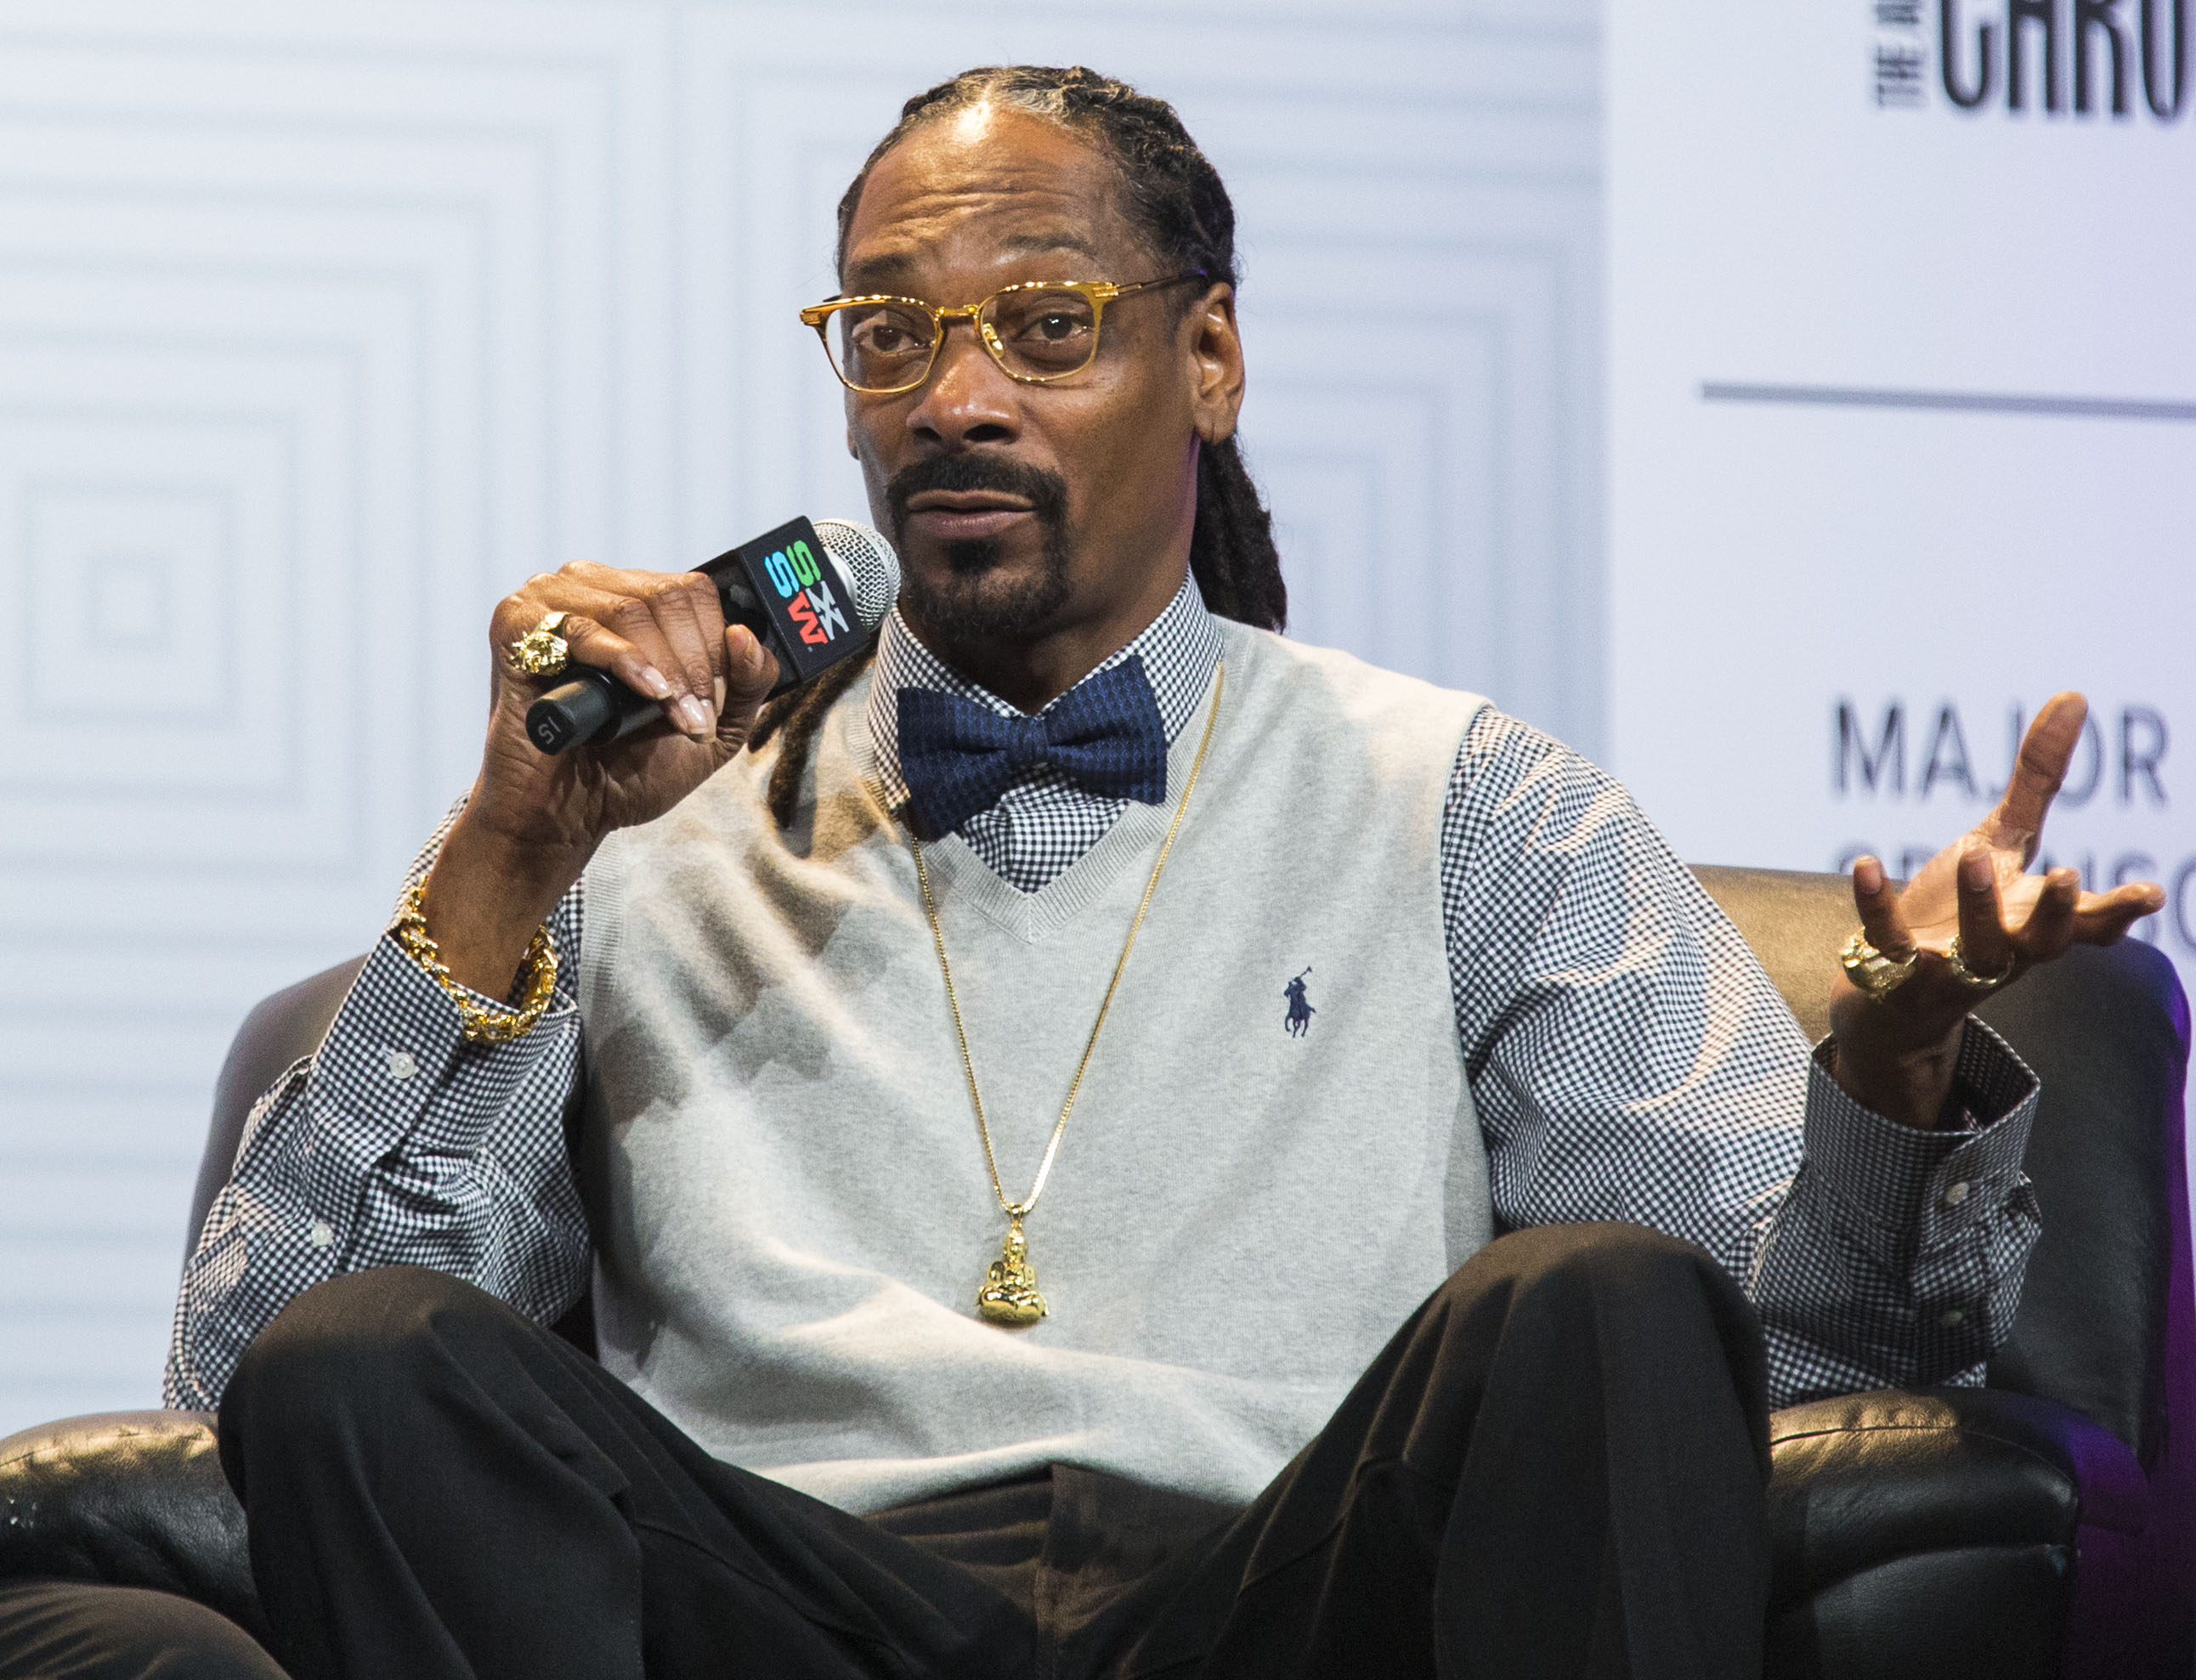 Best Snoop Dogg Quotes: Music: Killer Quotes From Snoop Dogg's SXSW Keynote